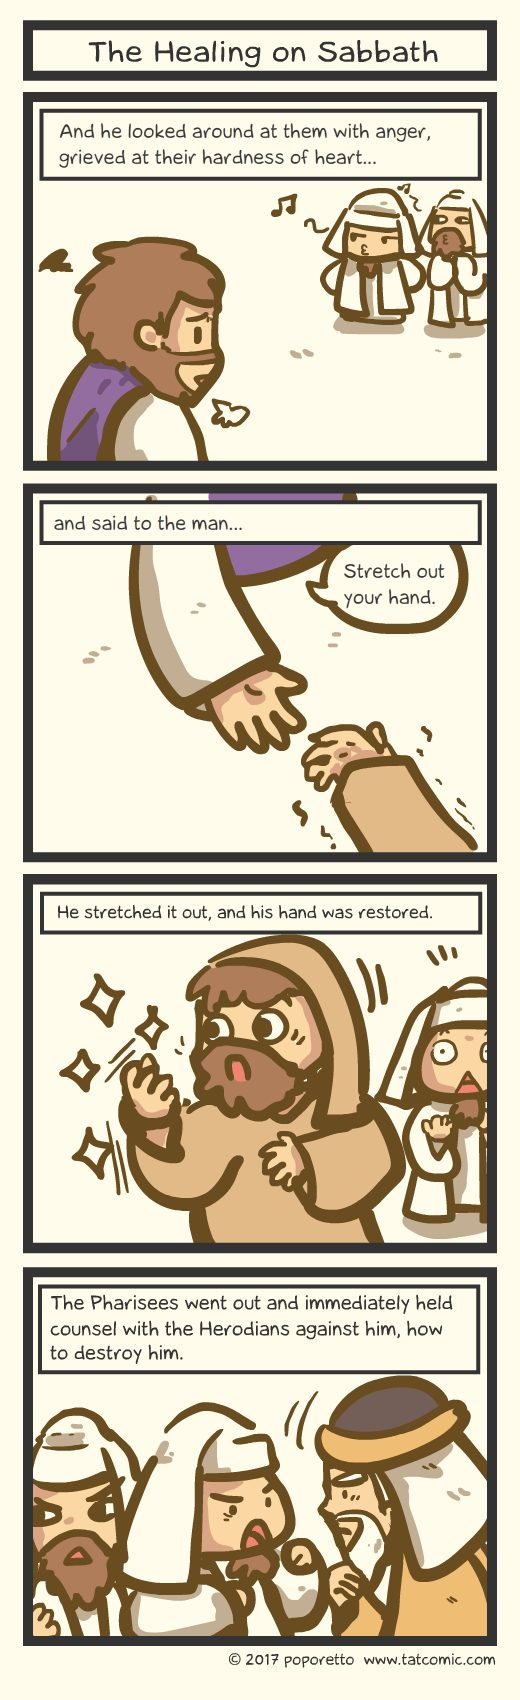 26-Gospel-Of-Mark-Christian-comic-strip-Jesus-Healing-Withered-Hand-man.jpg